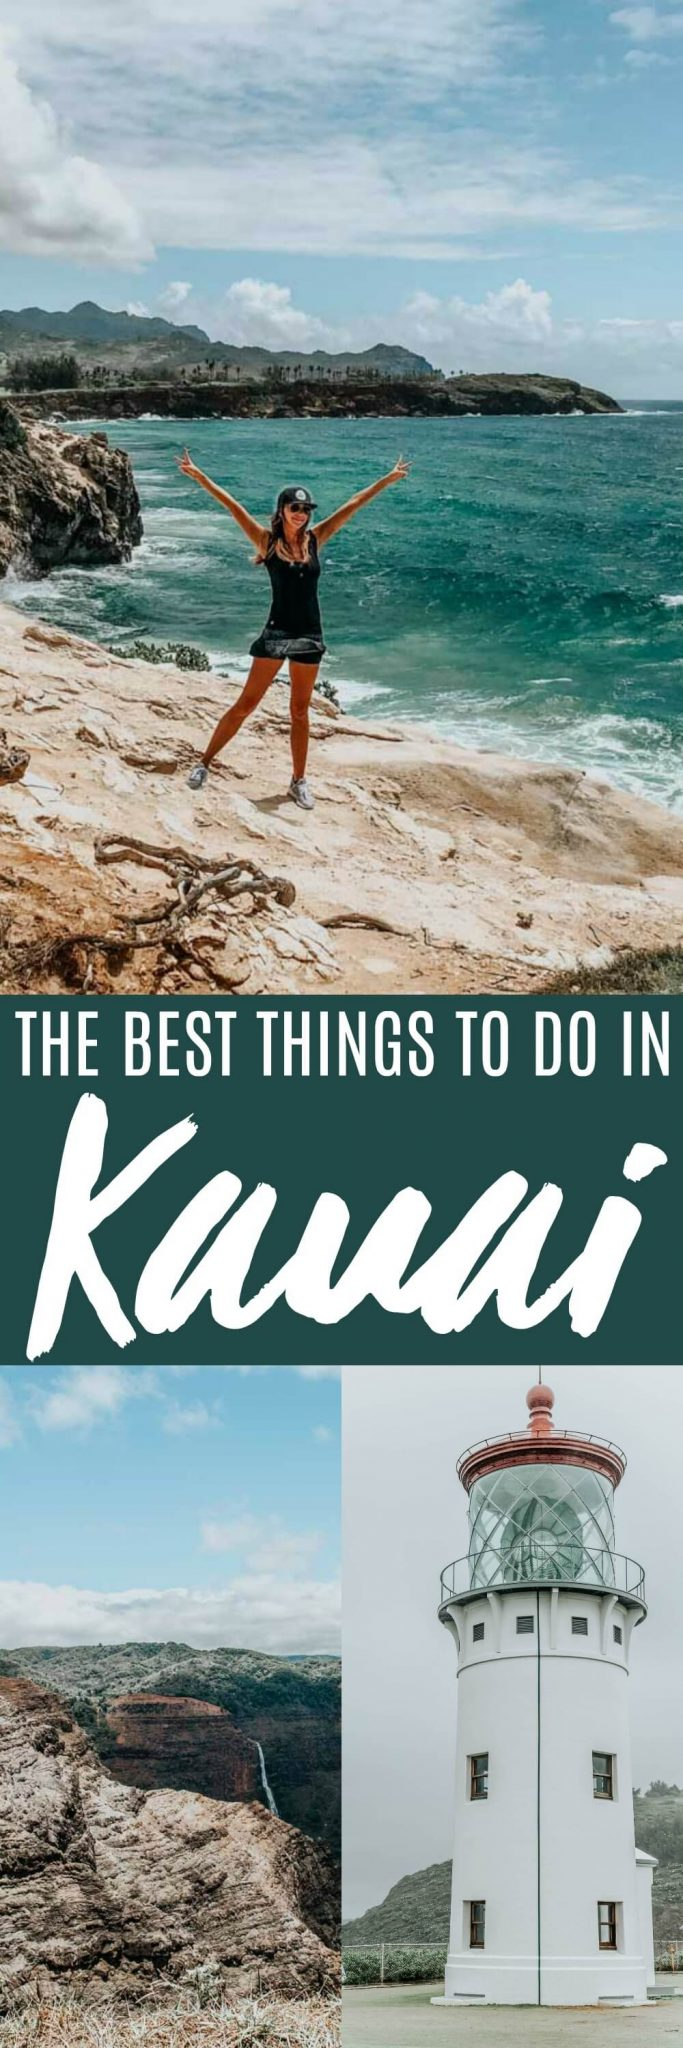 Tropical Kauai, Hawaii offers beautiful hiking trails, a stunning lighthouse, & amazing food. Here are some of the best things to do and where to eat when visiting Kauai.